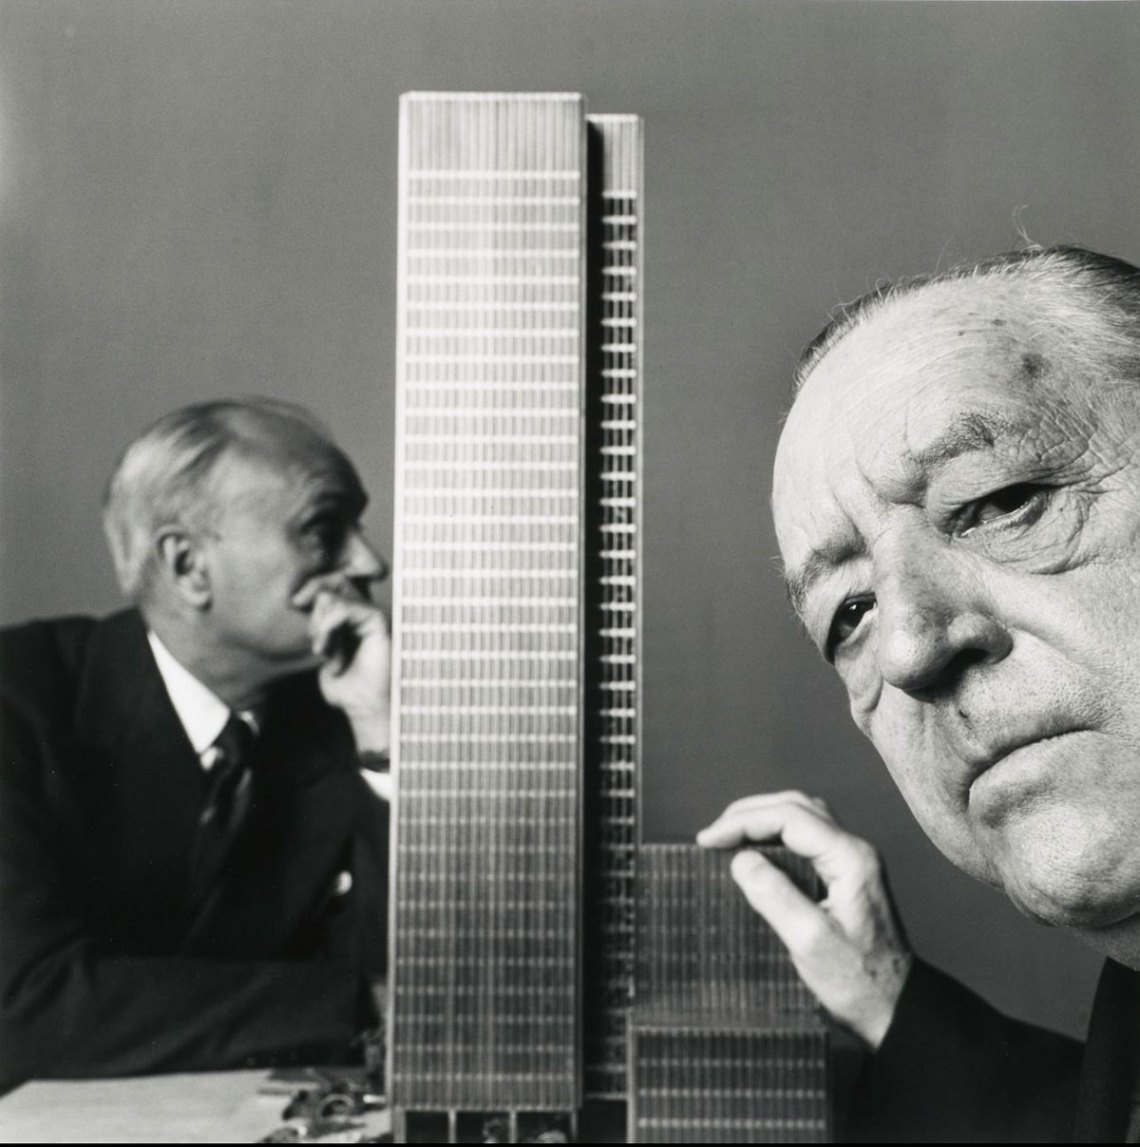 Model of the building and Mies Van Der Rohe